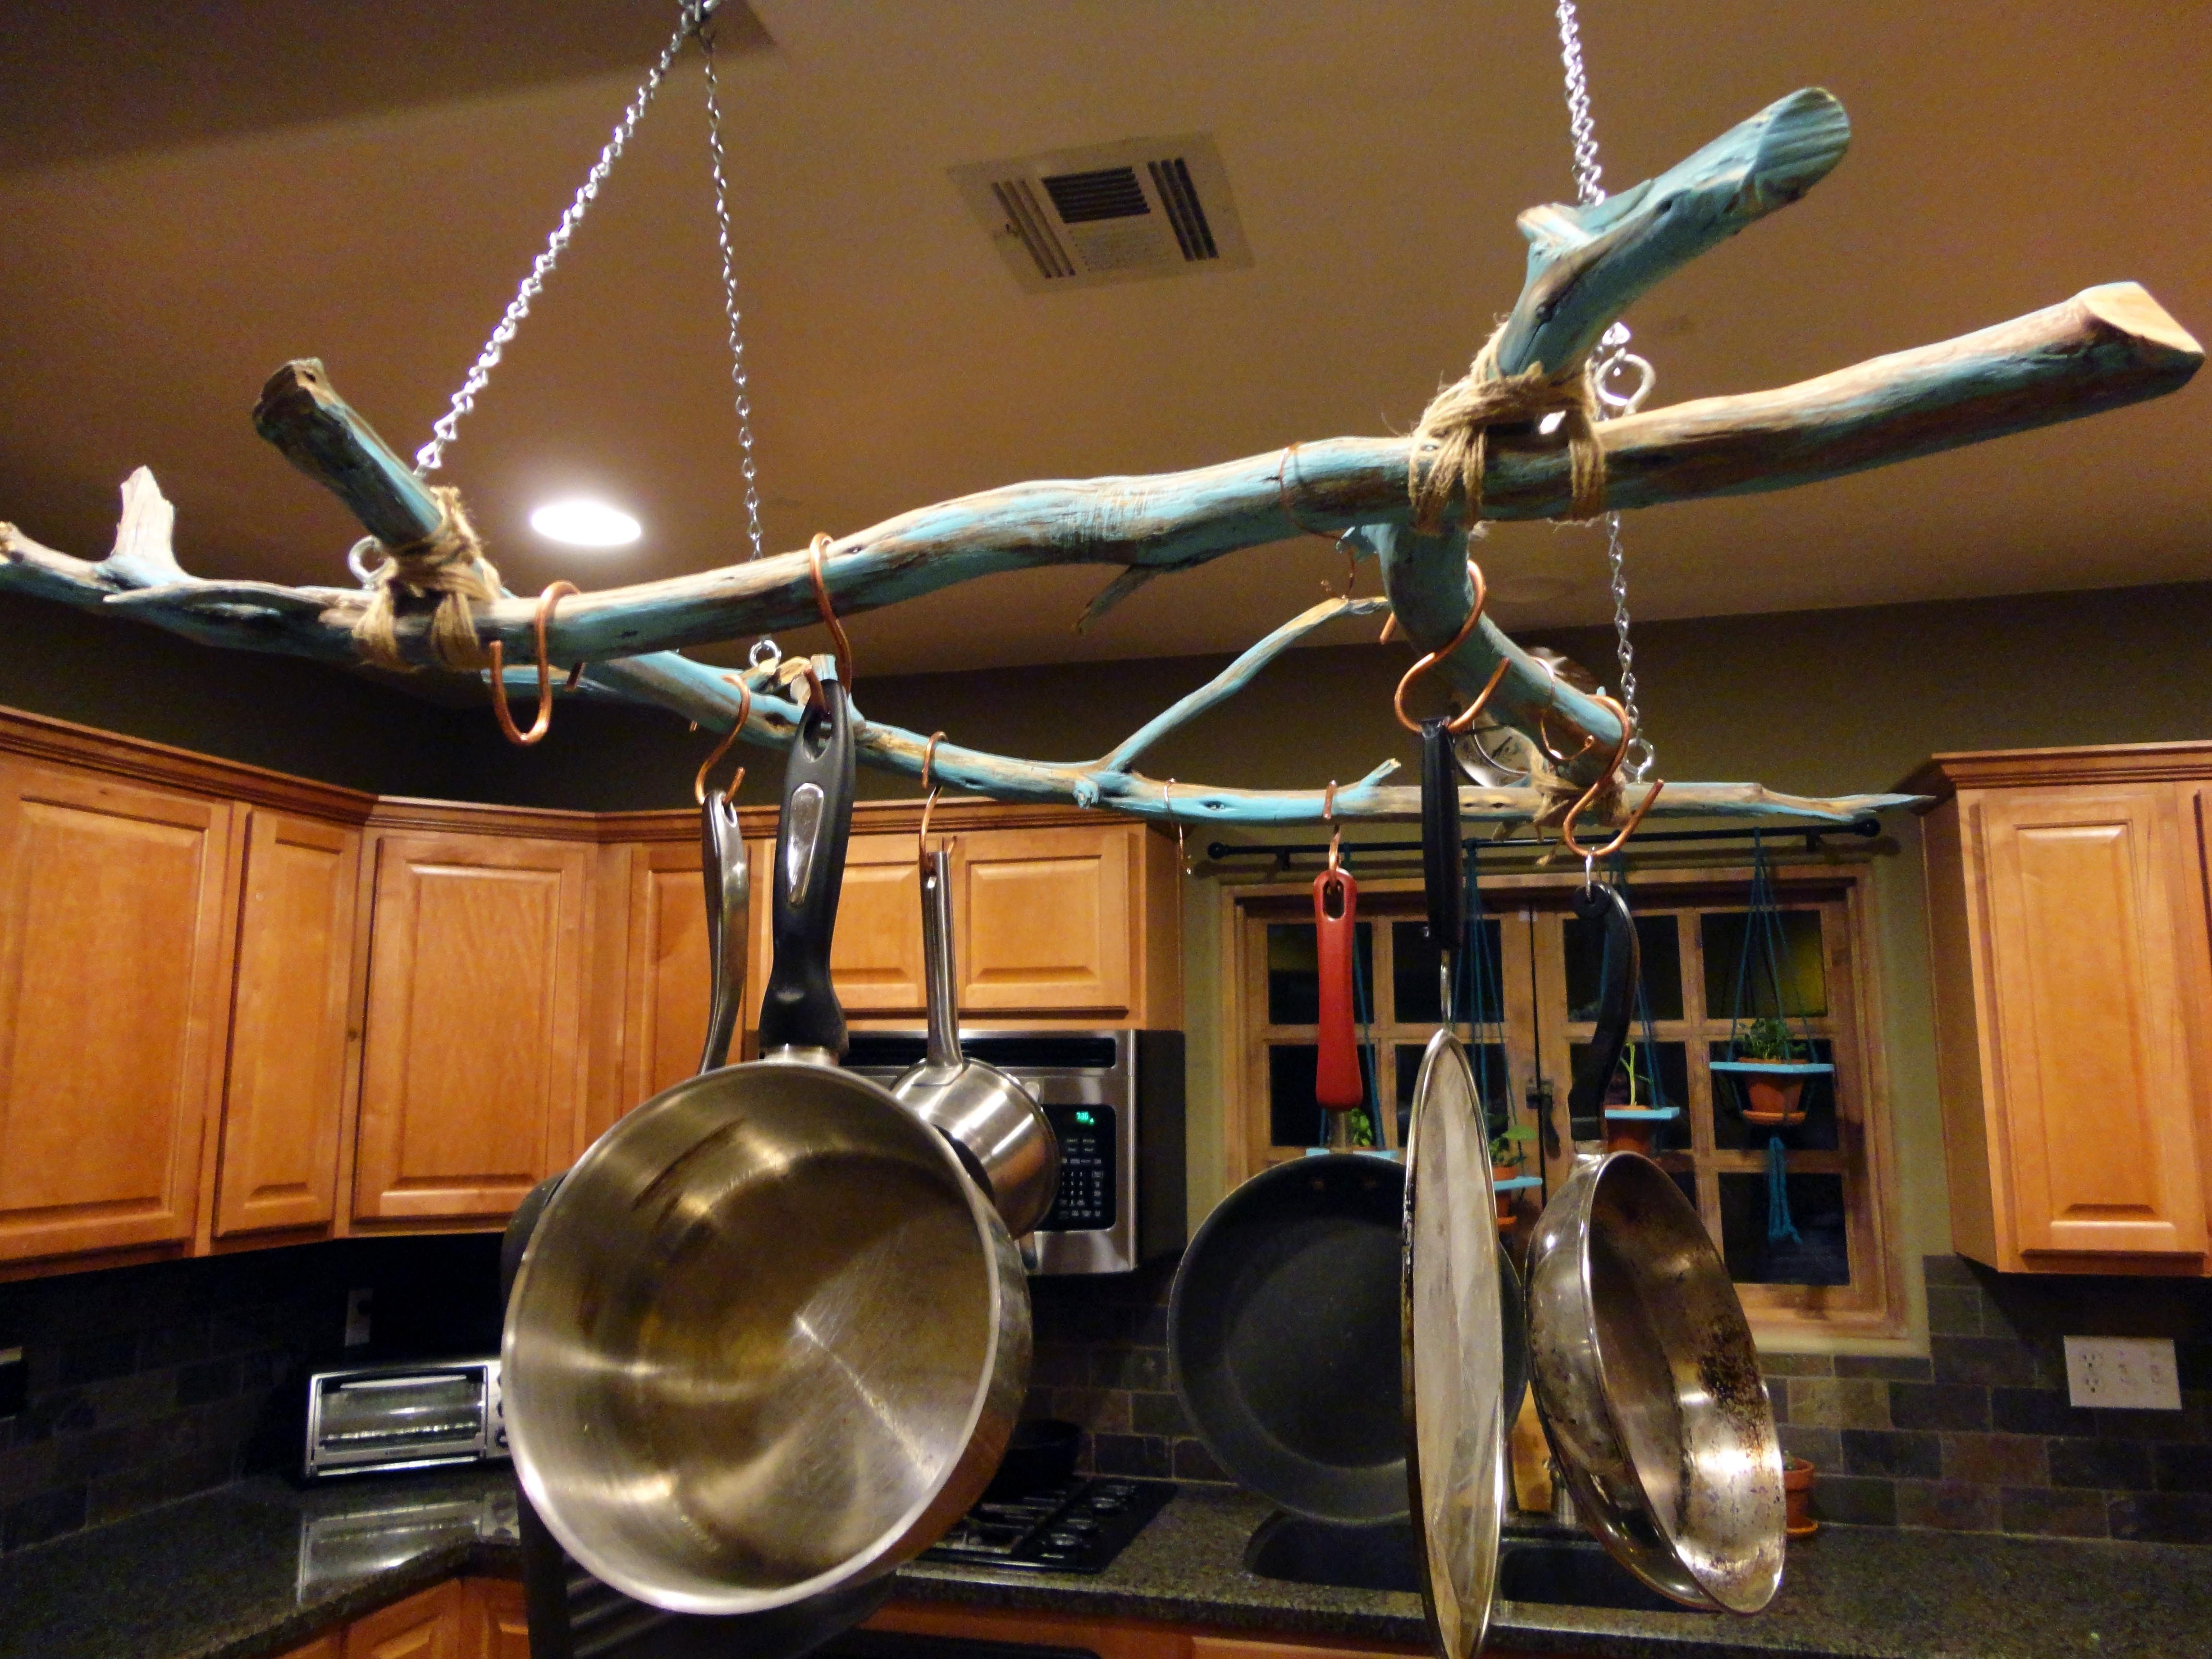 How To Choose The Right Rack For Hanging Pots And Pans Pot Rack Hanging Pot Hanger Kitchen Hanging Pots Pots and pan ceiling racks